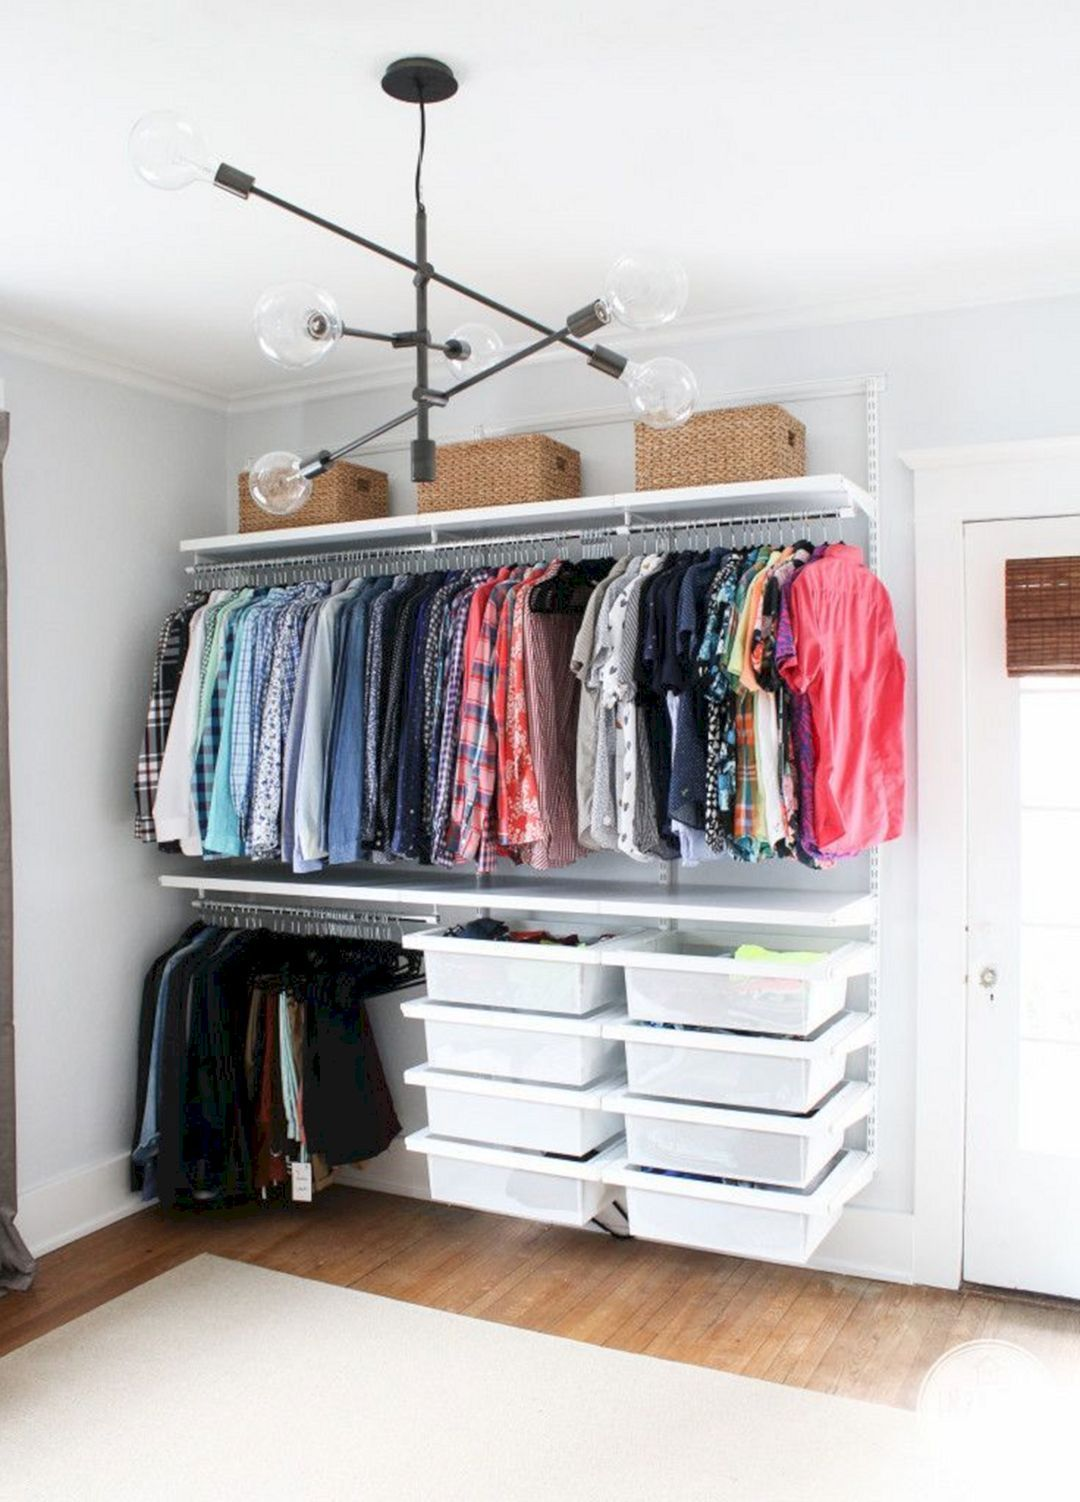 Breathtaking 28 DIY Creative Clothes Storage Ideas For Home that